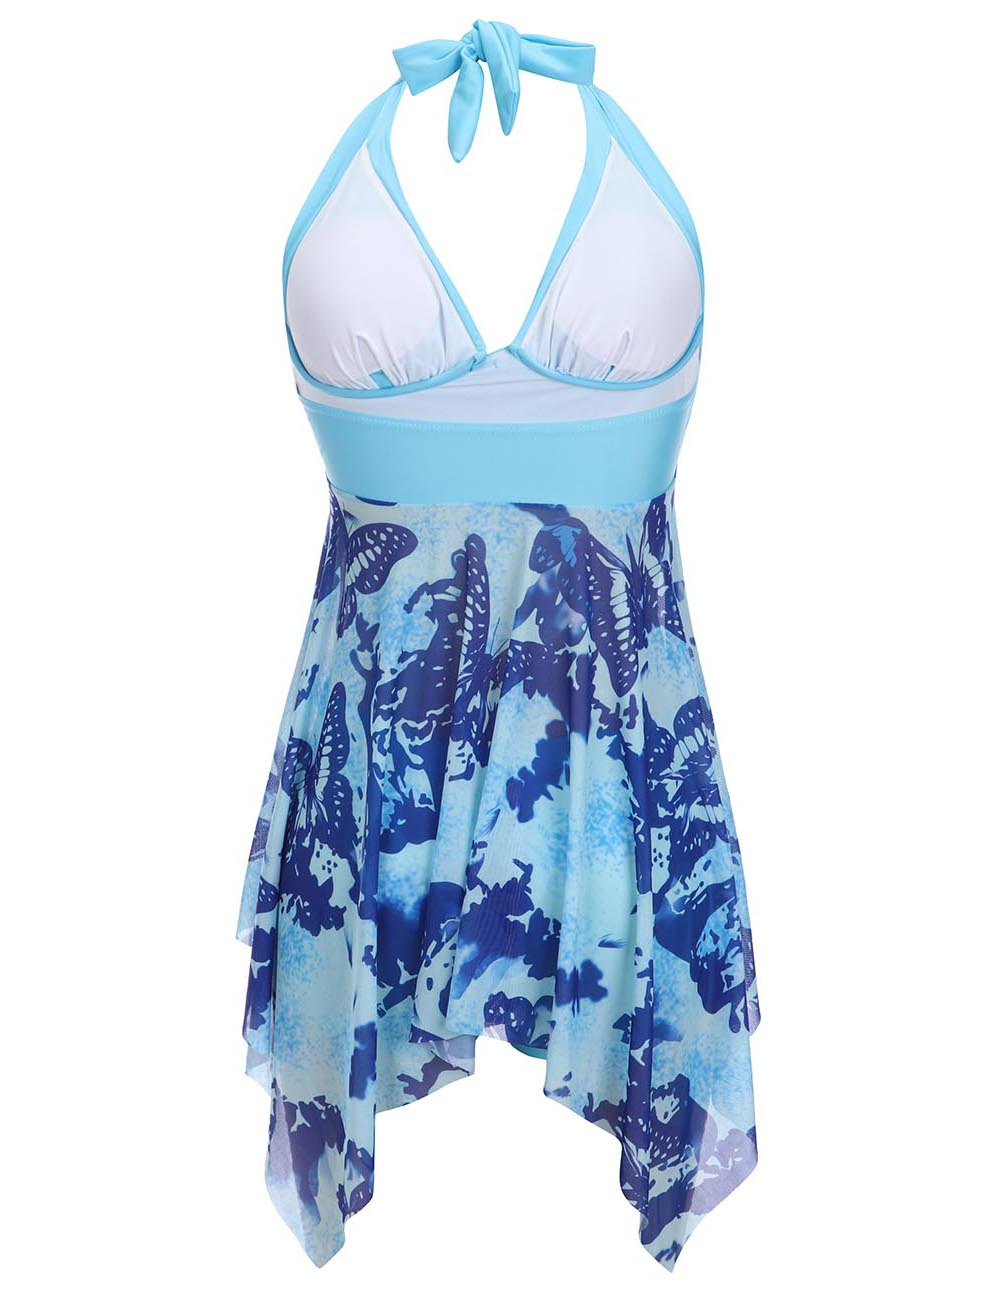 //cdn.affectcloud.com/hexinfashion/upload/imgs/Swimwear/Tankini/F195157-BU1/F195157-BU1-201911065dc2726389baf.jpg